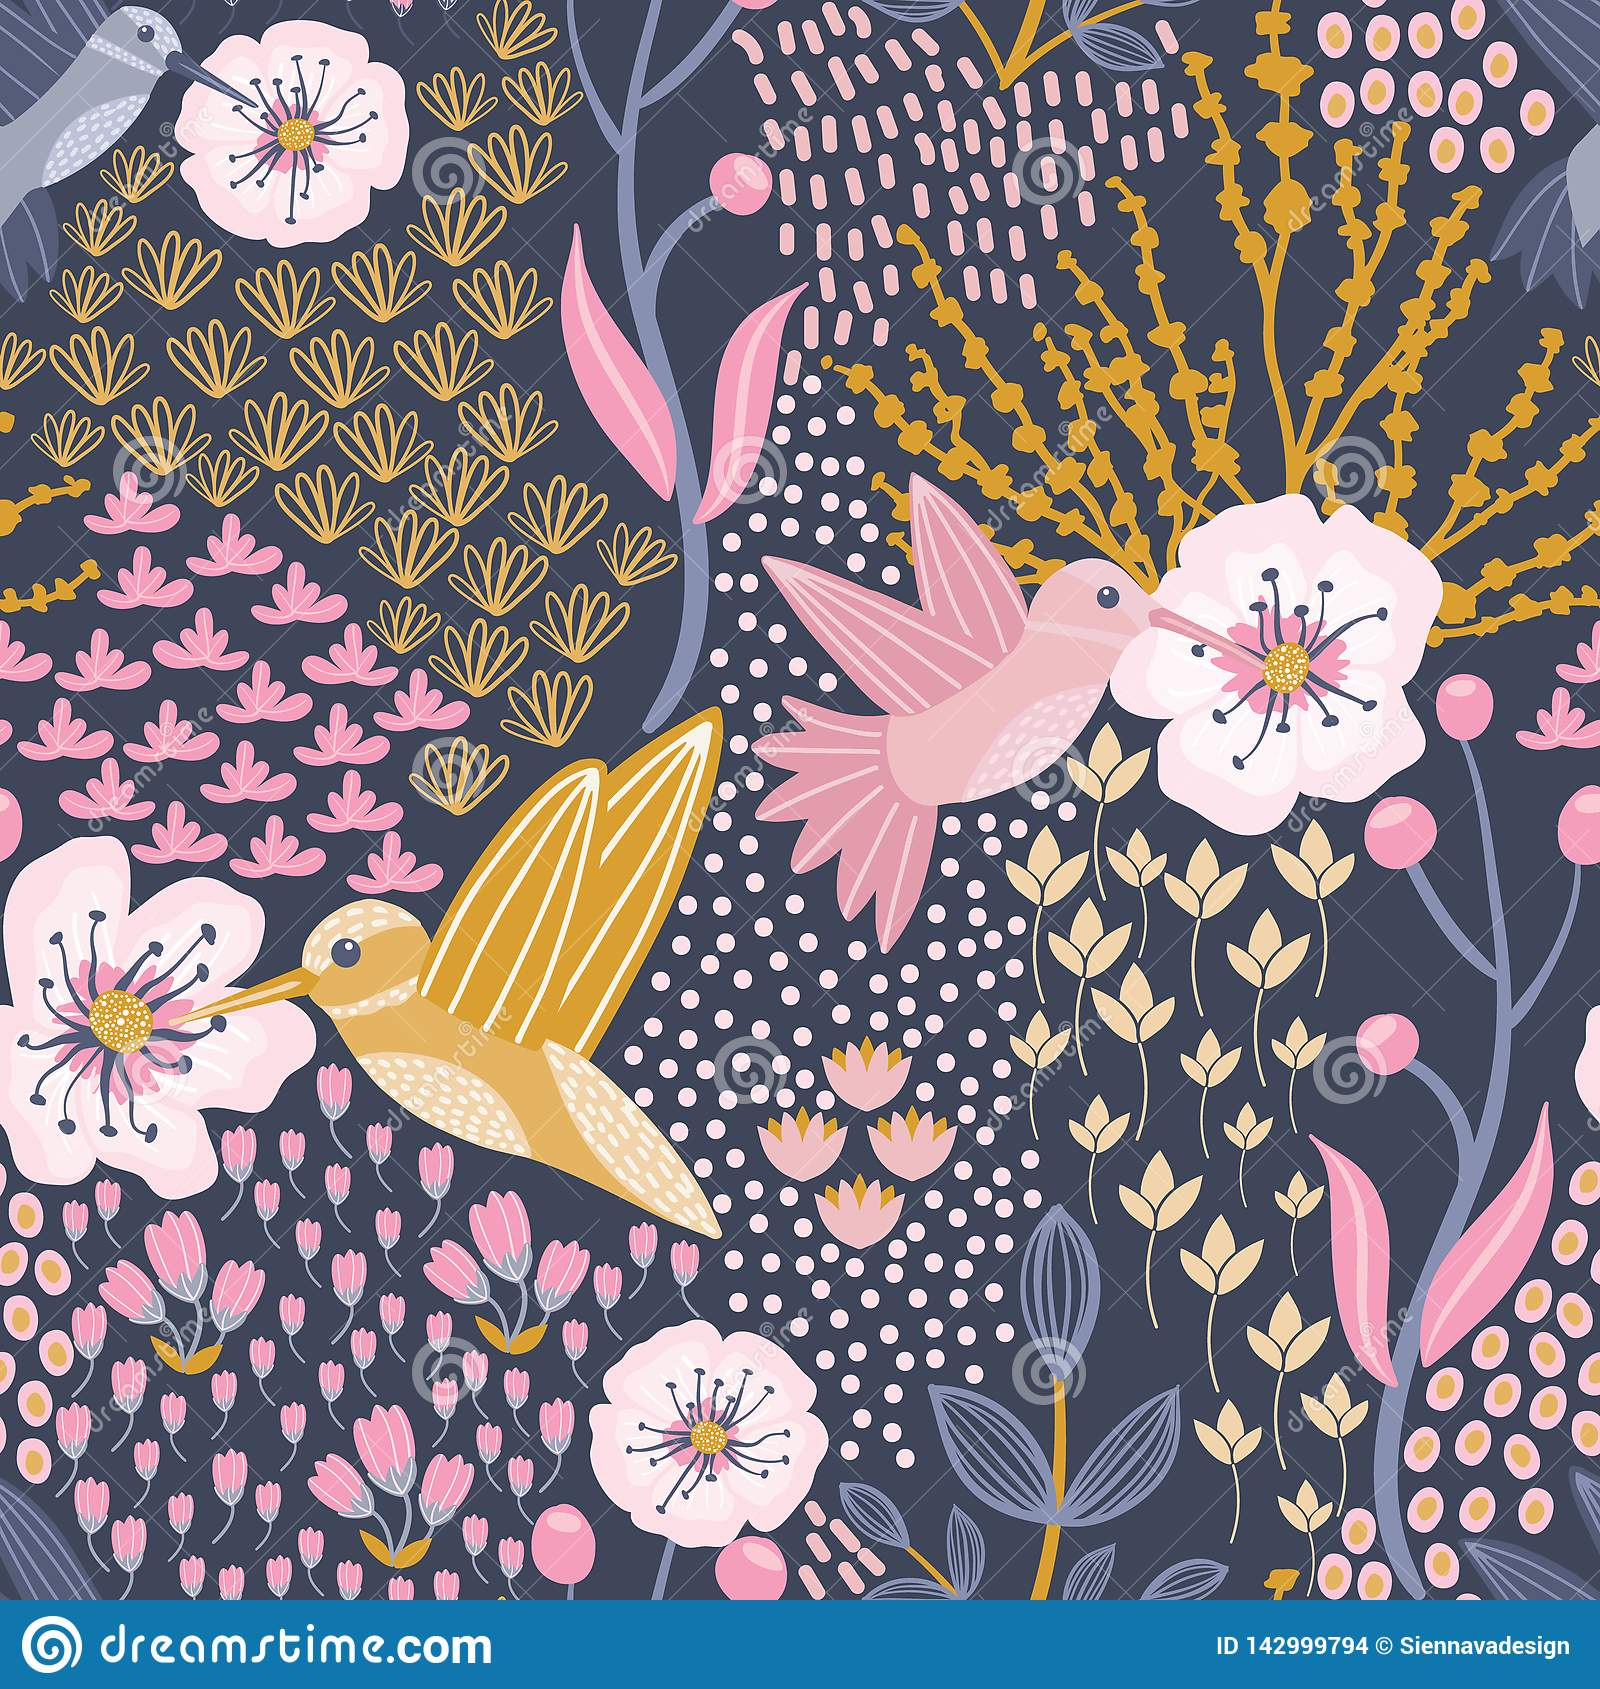 Hummingbird and Cherry Blossom Blue Background Seamless Pattern